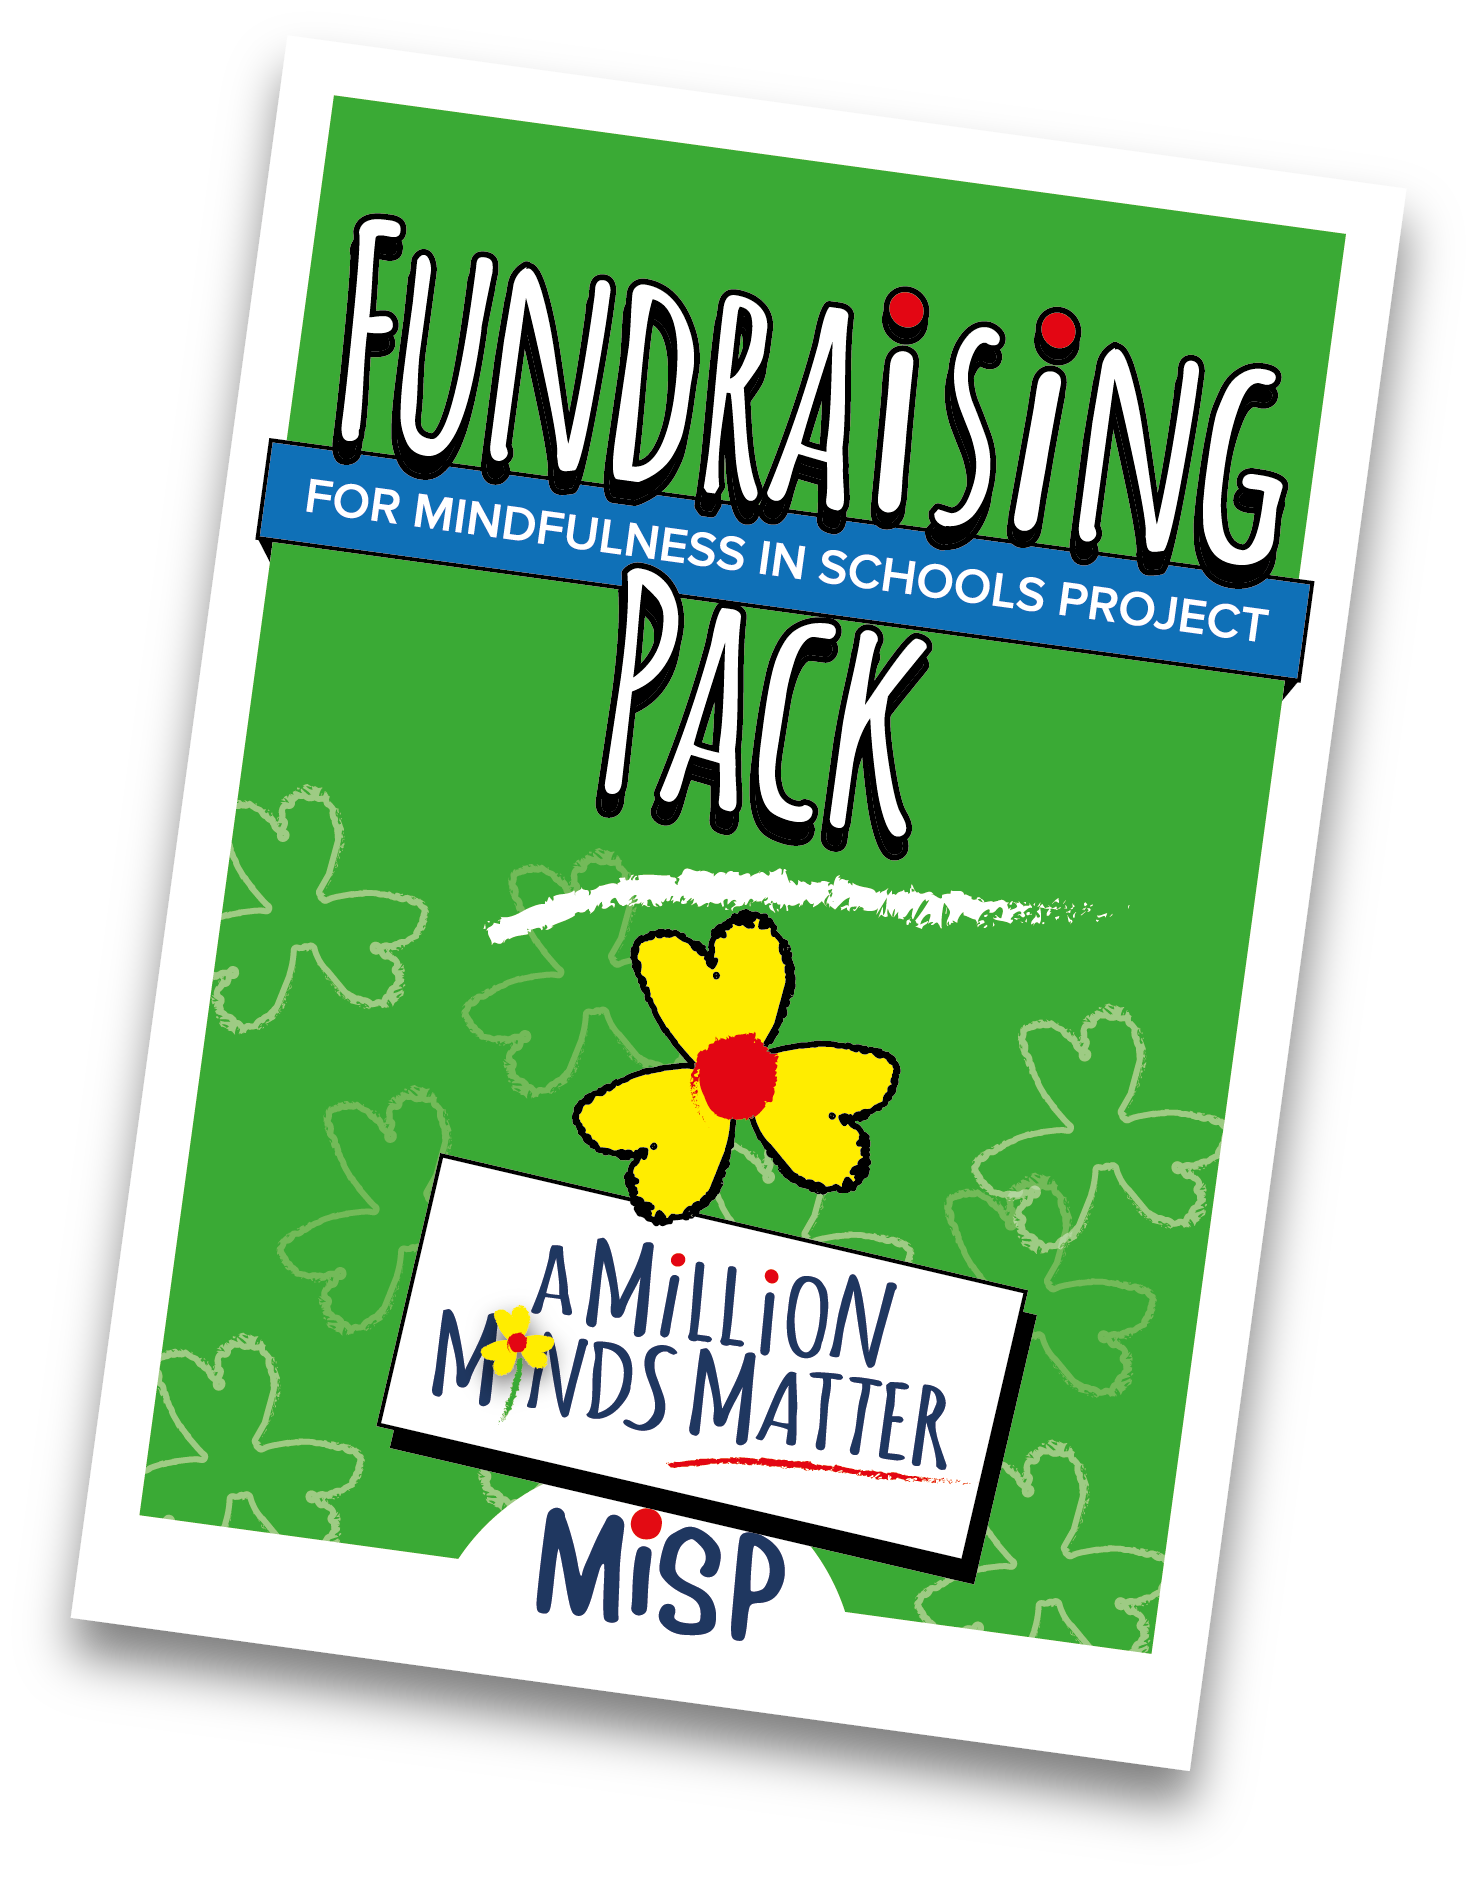 Fundraising Pack | Mindfulness in Schools Project